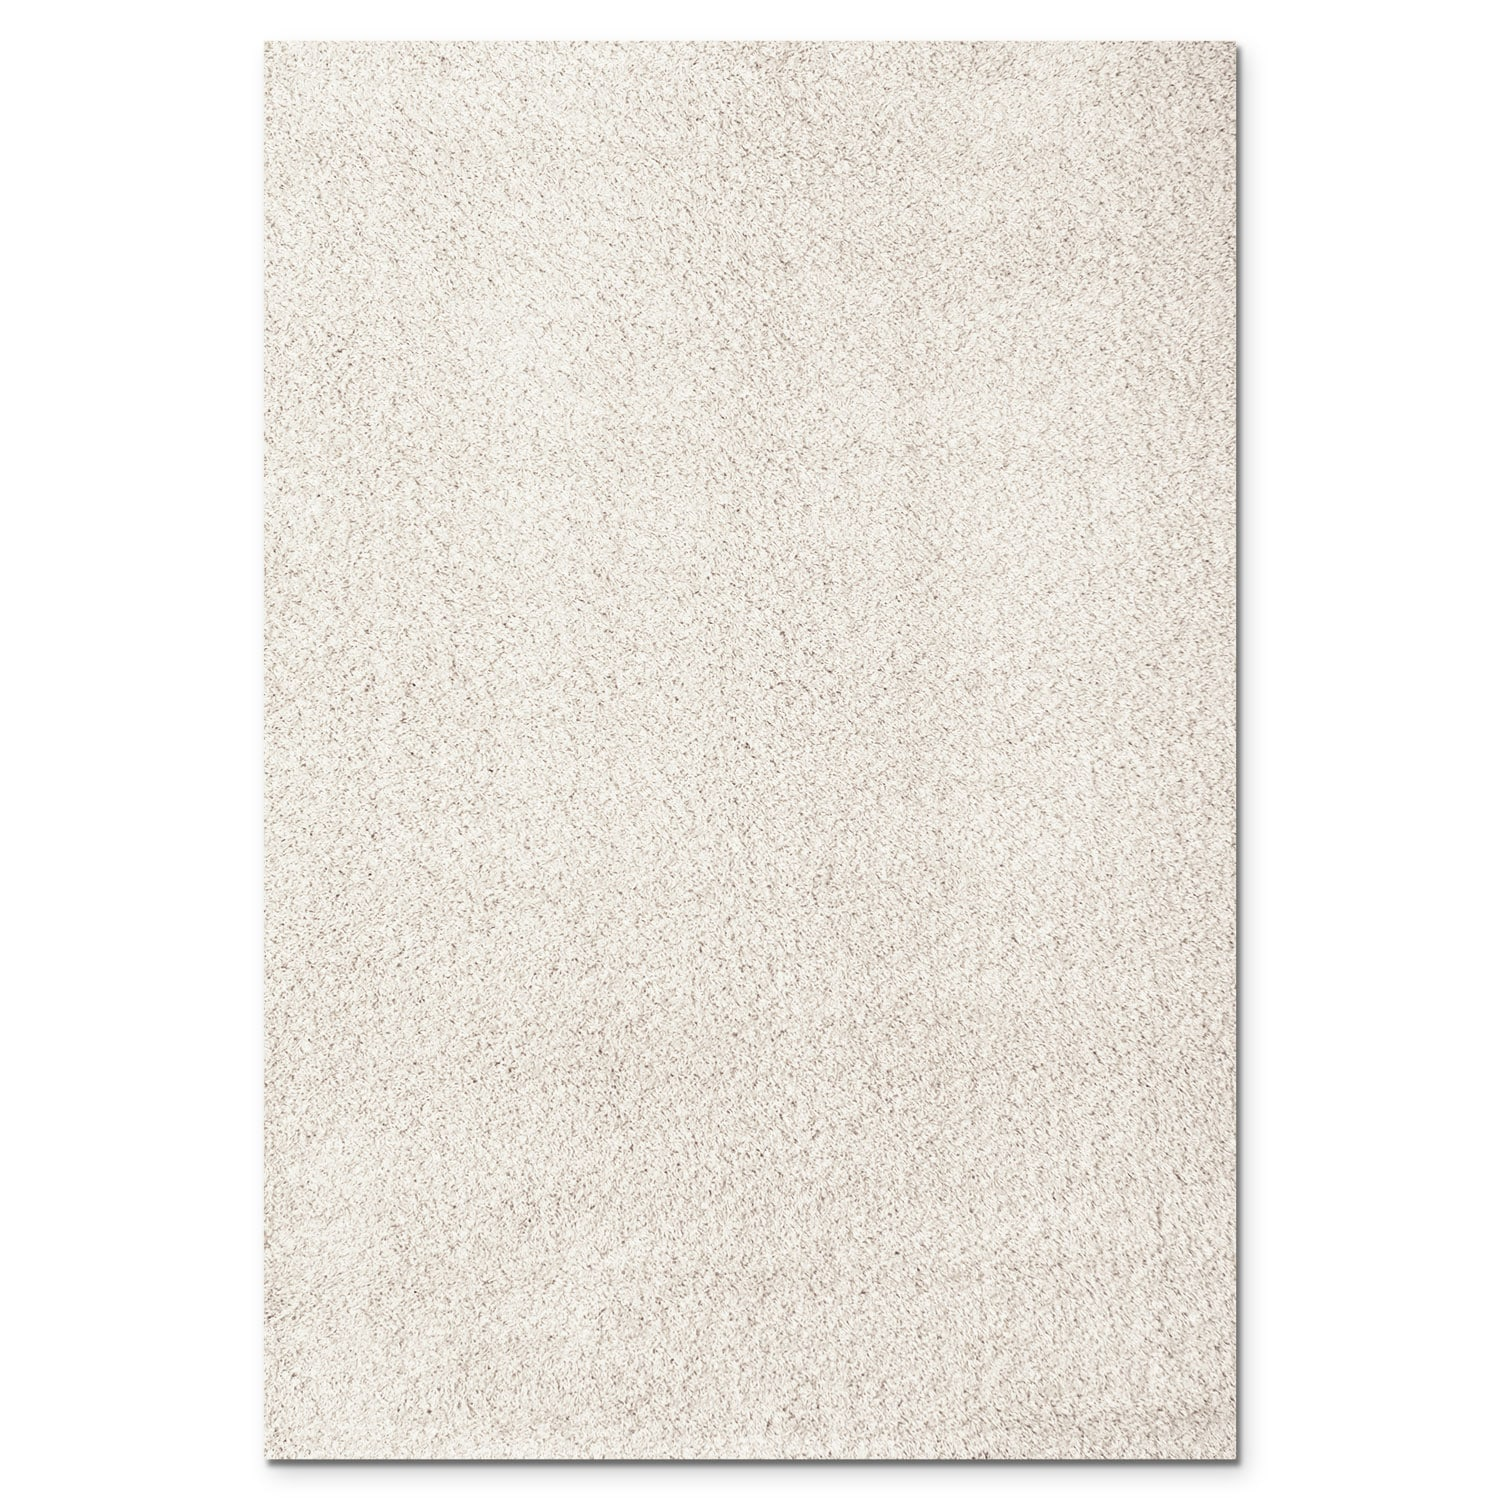 Rugs - Domino Shag Area Rug - White